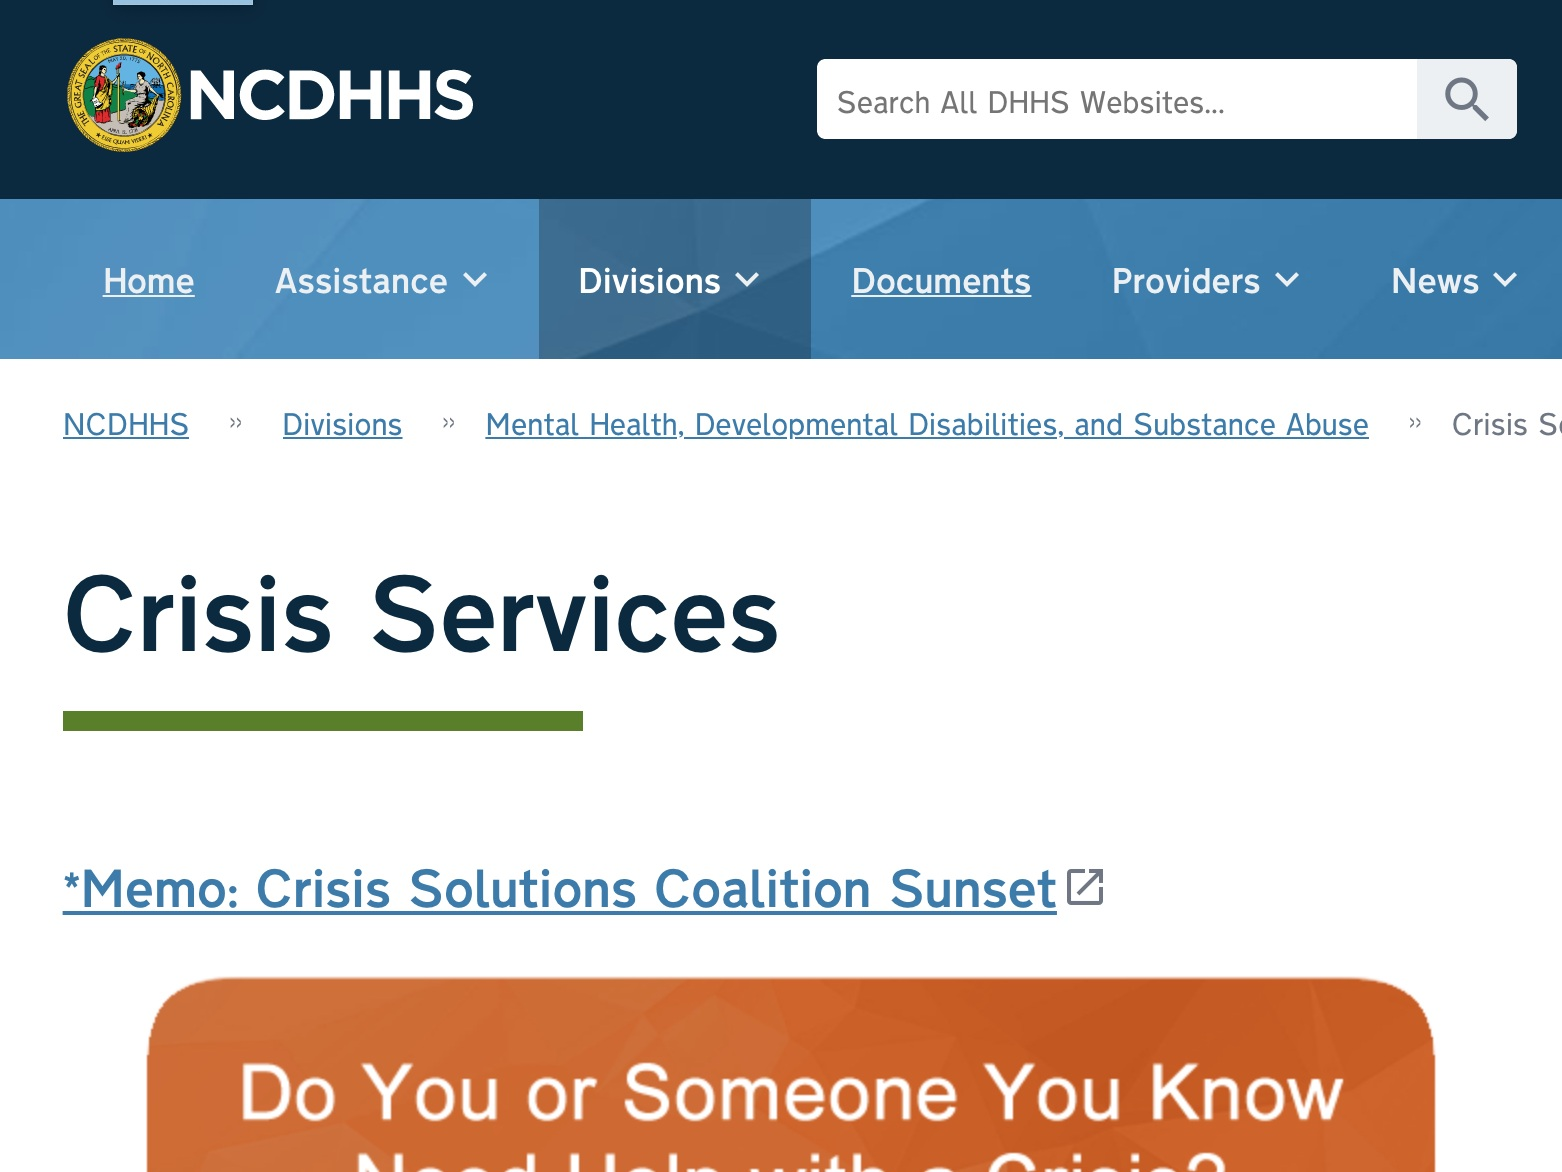 crisis resources - Anyone may request crisis or emergency services in North Carolina for mental health, substance abuse, intellectual and developmental disabilities issues.